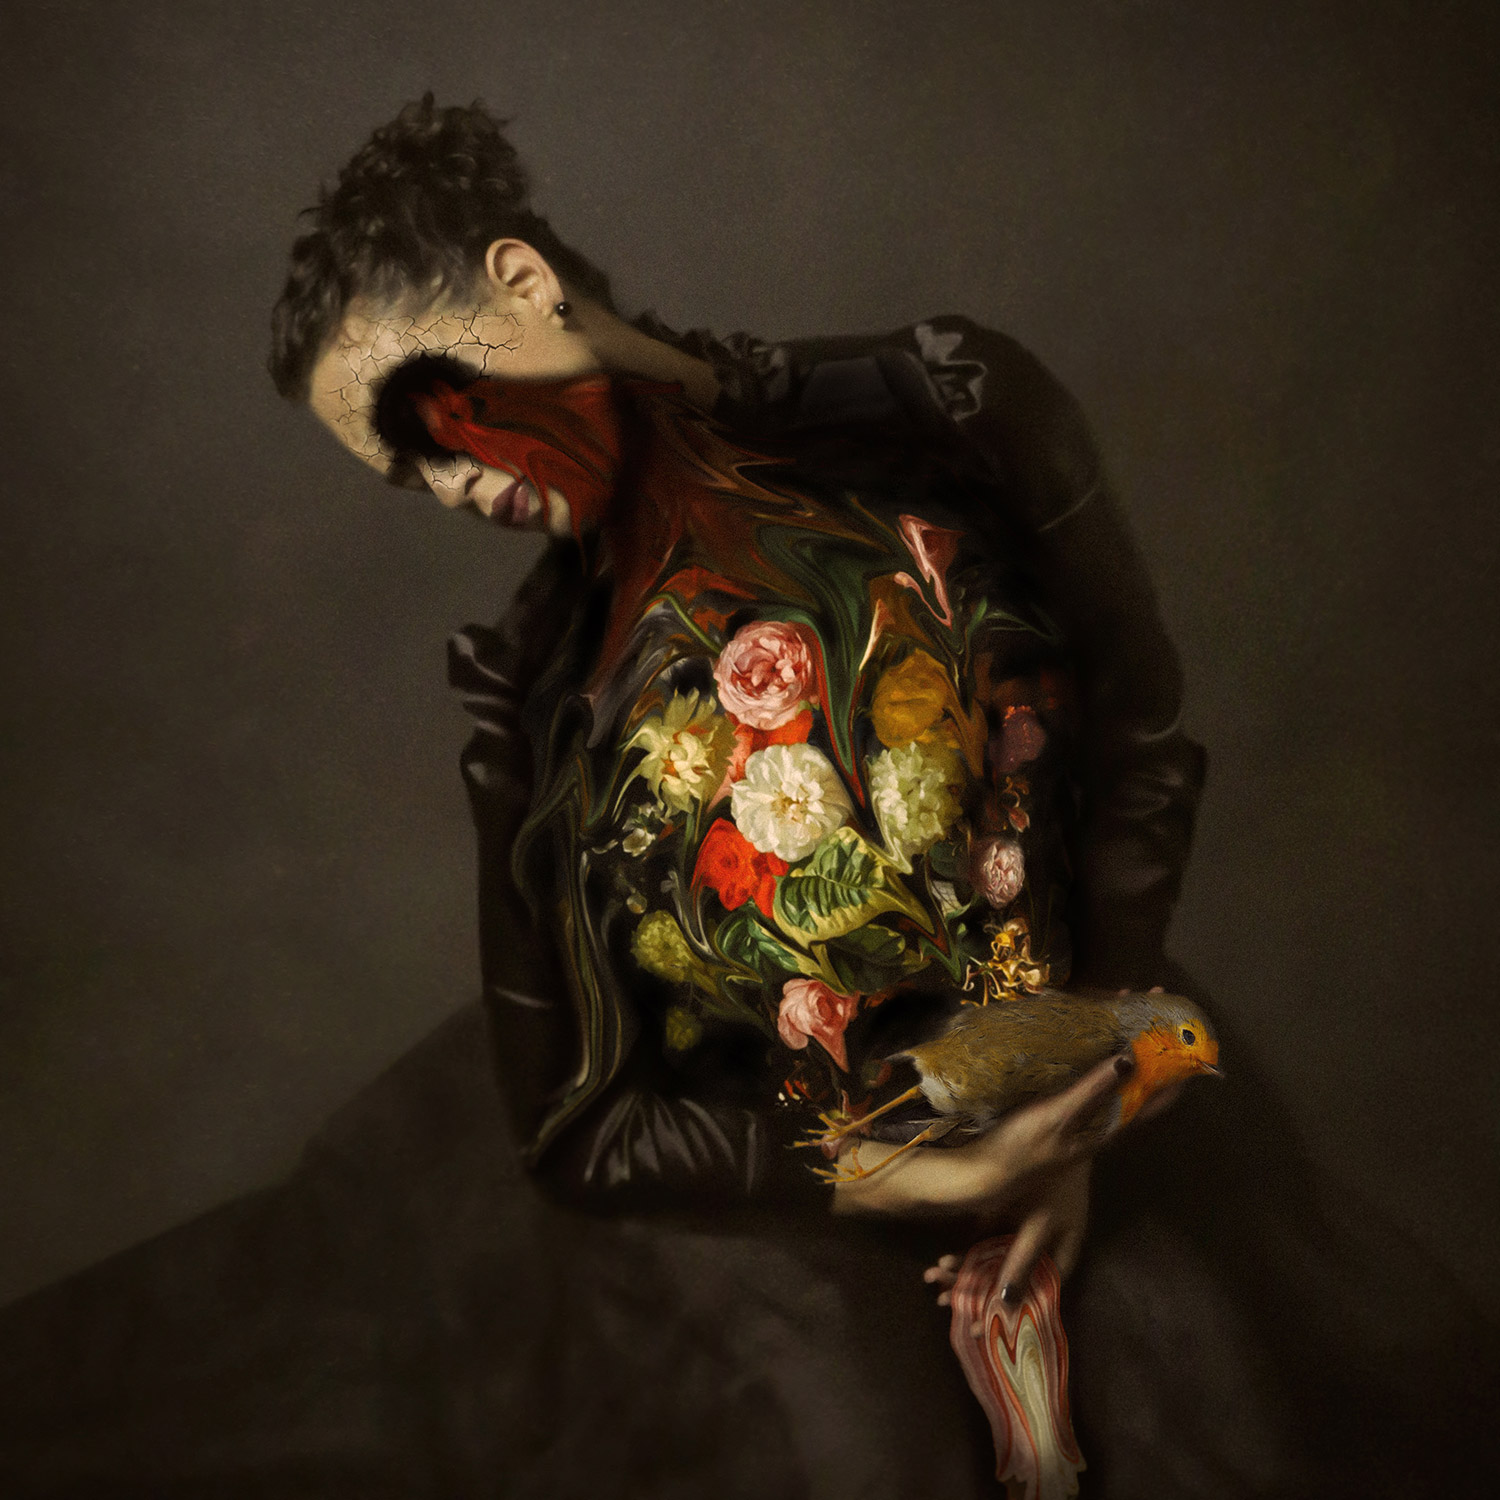 Josephine Cardin - bugs and dirt